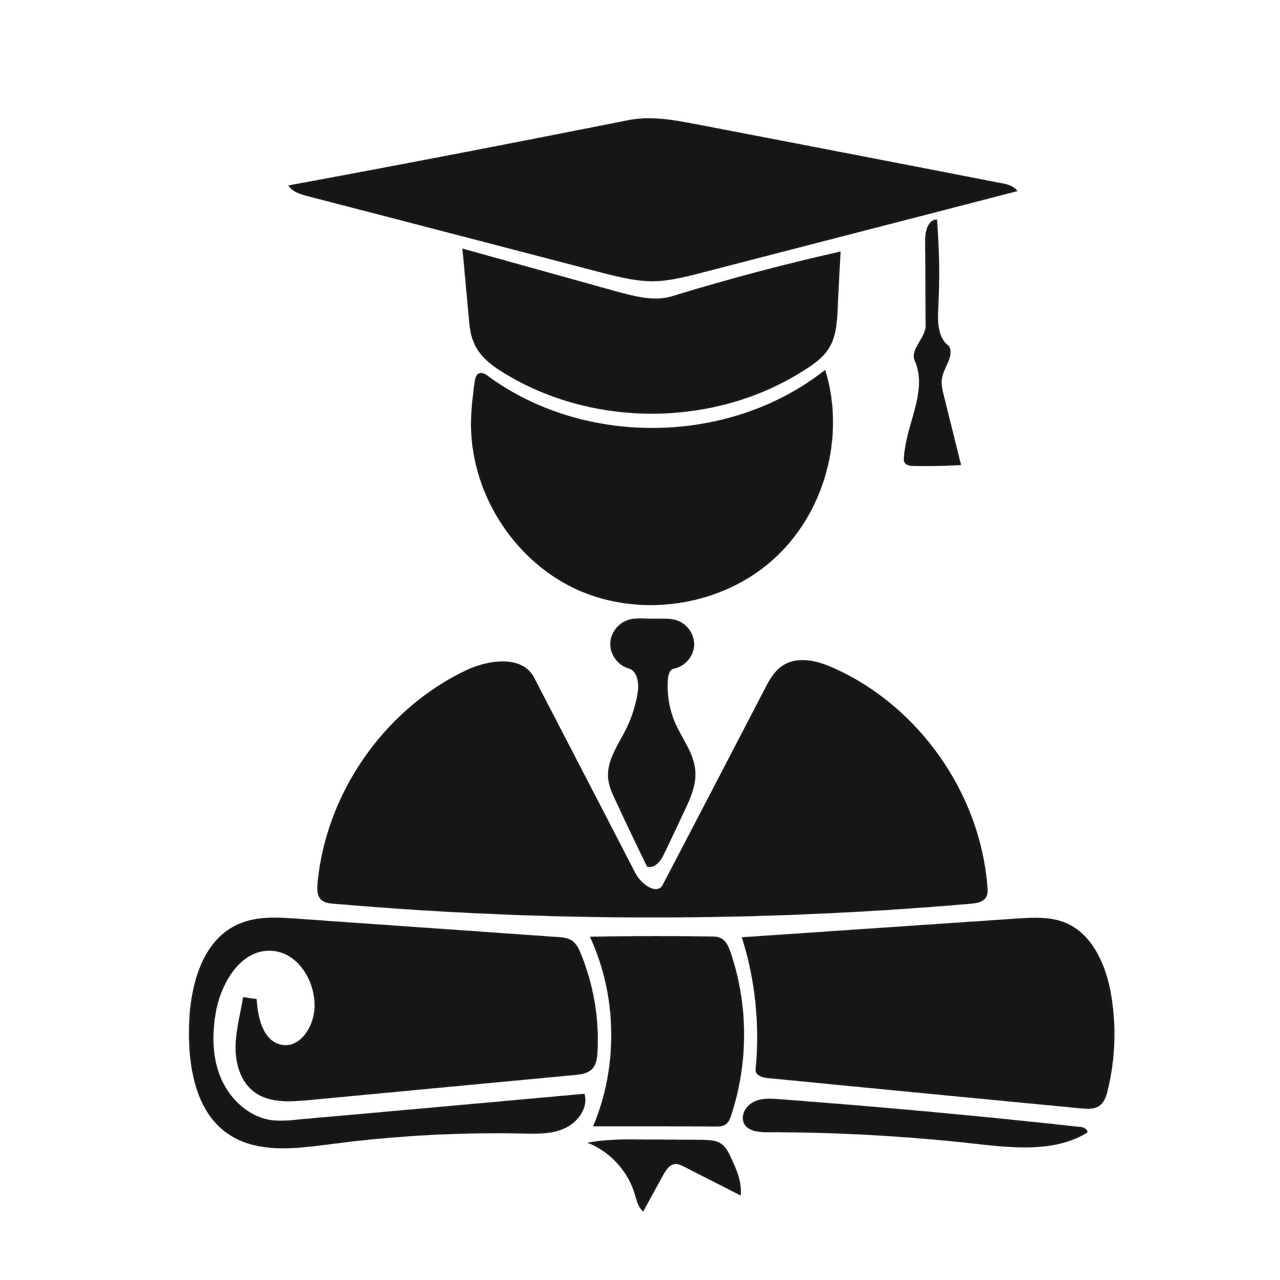 Blackand white silhouette of a non-gendered student with a graduation cap and diploma